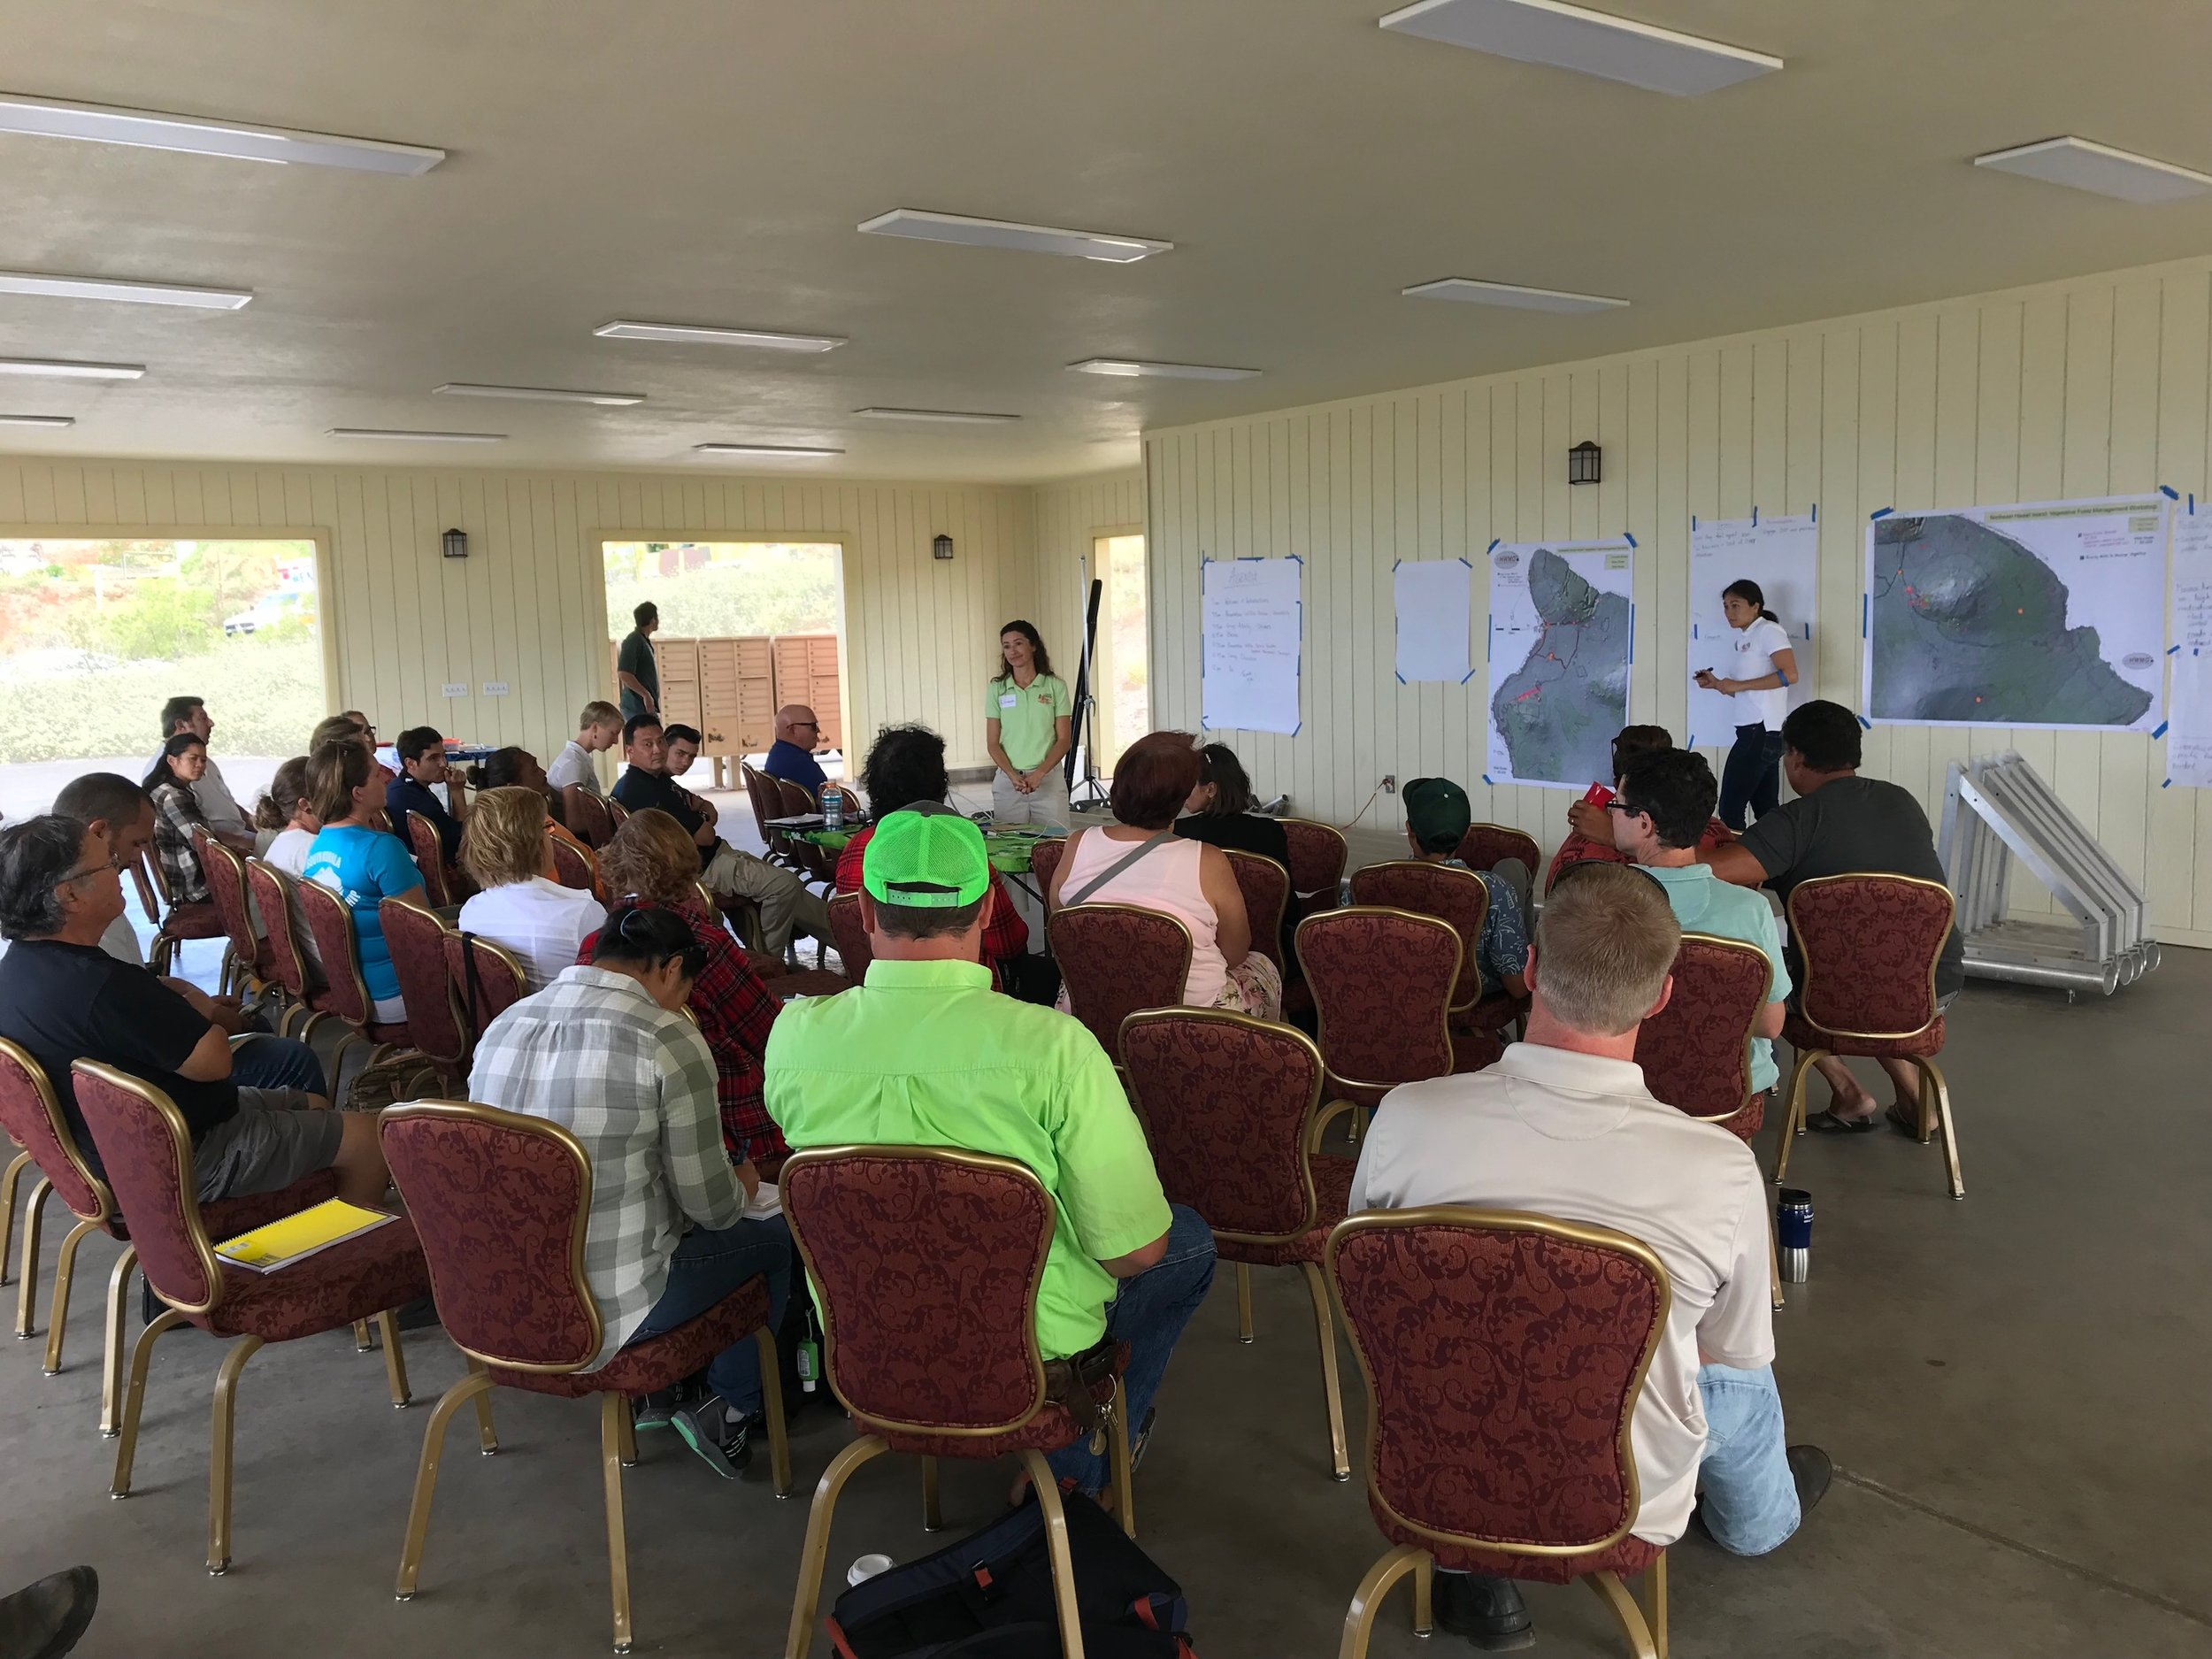 Hawaii Island Kailapa Vegetative Fuels Management Collaborative Action Planning Workshop_2_26_2019_67.jpg